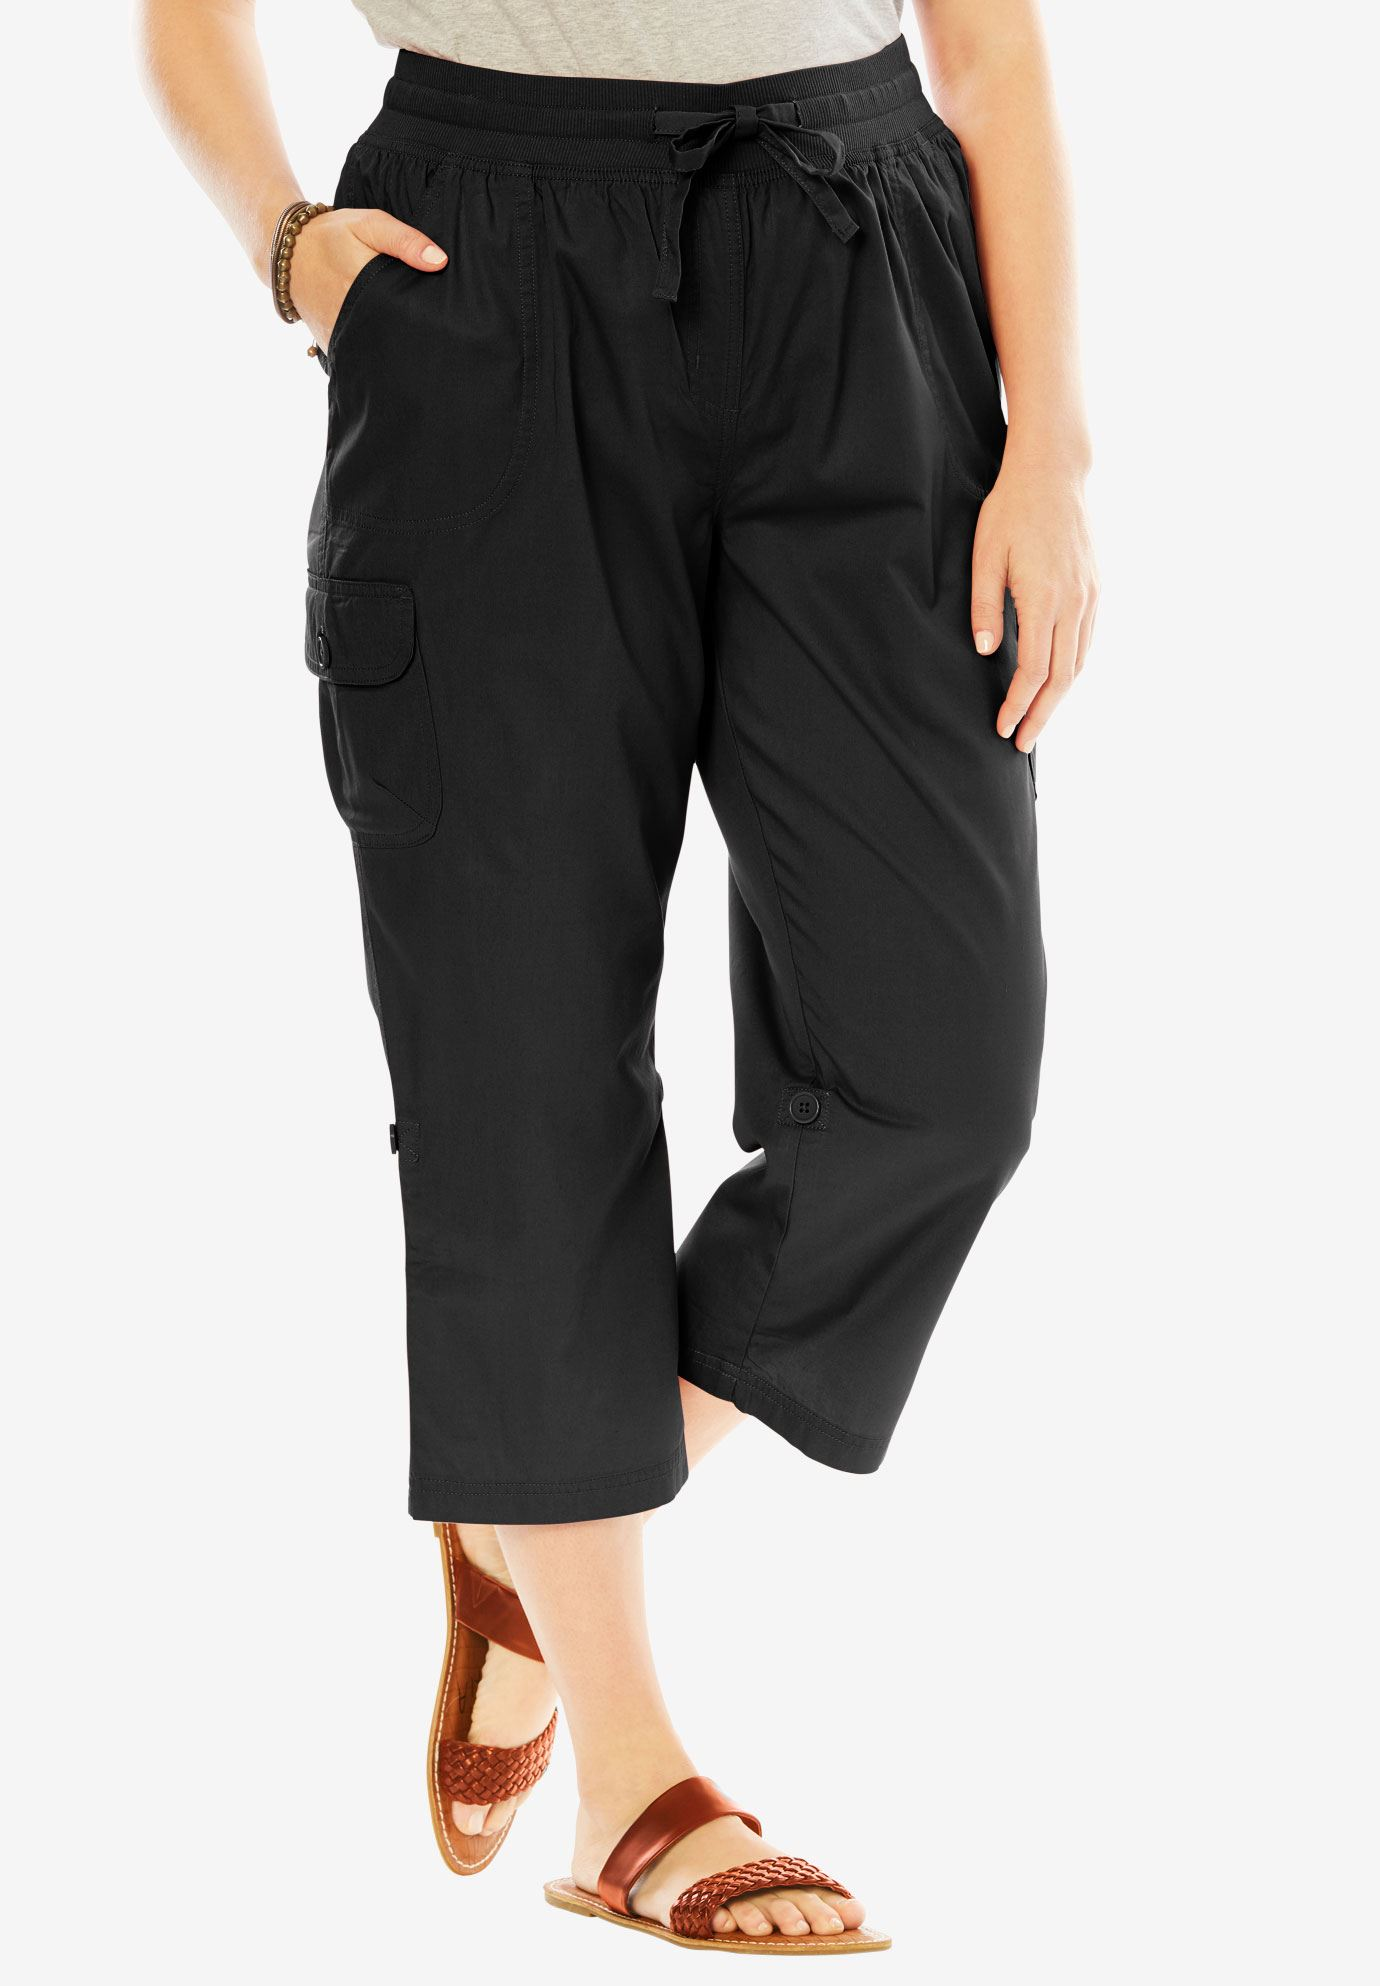 7707e3b4cd6 Convertible-Length Cotton Cargo Capri Pants